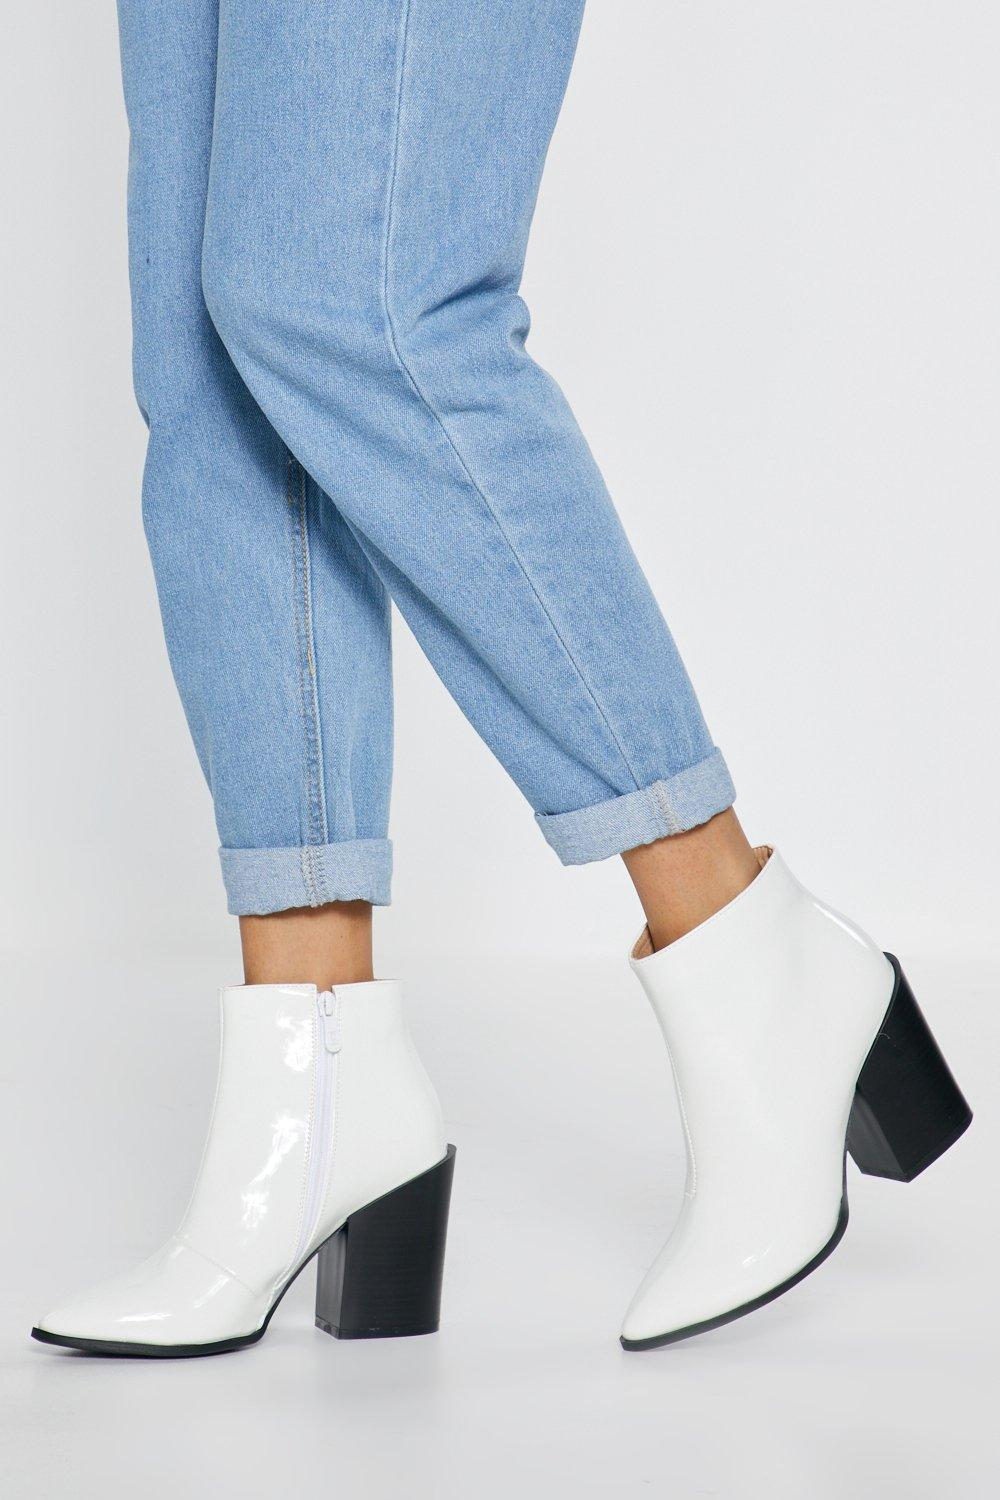 35d4850a81 What's Your Ankle Patent Heeled Boots | Shop Clothes at Nasty Gal!